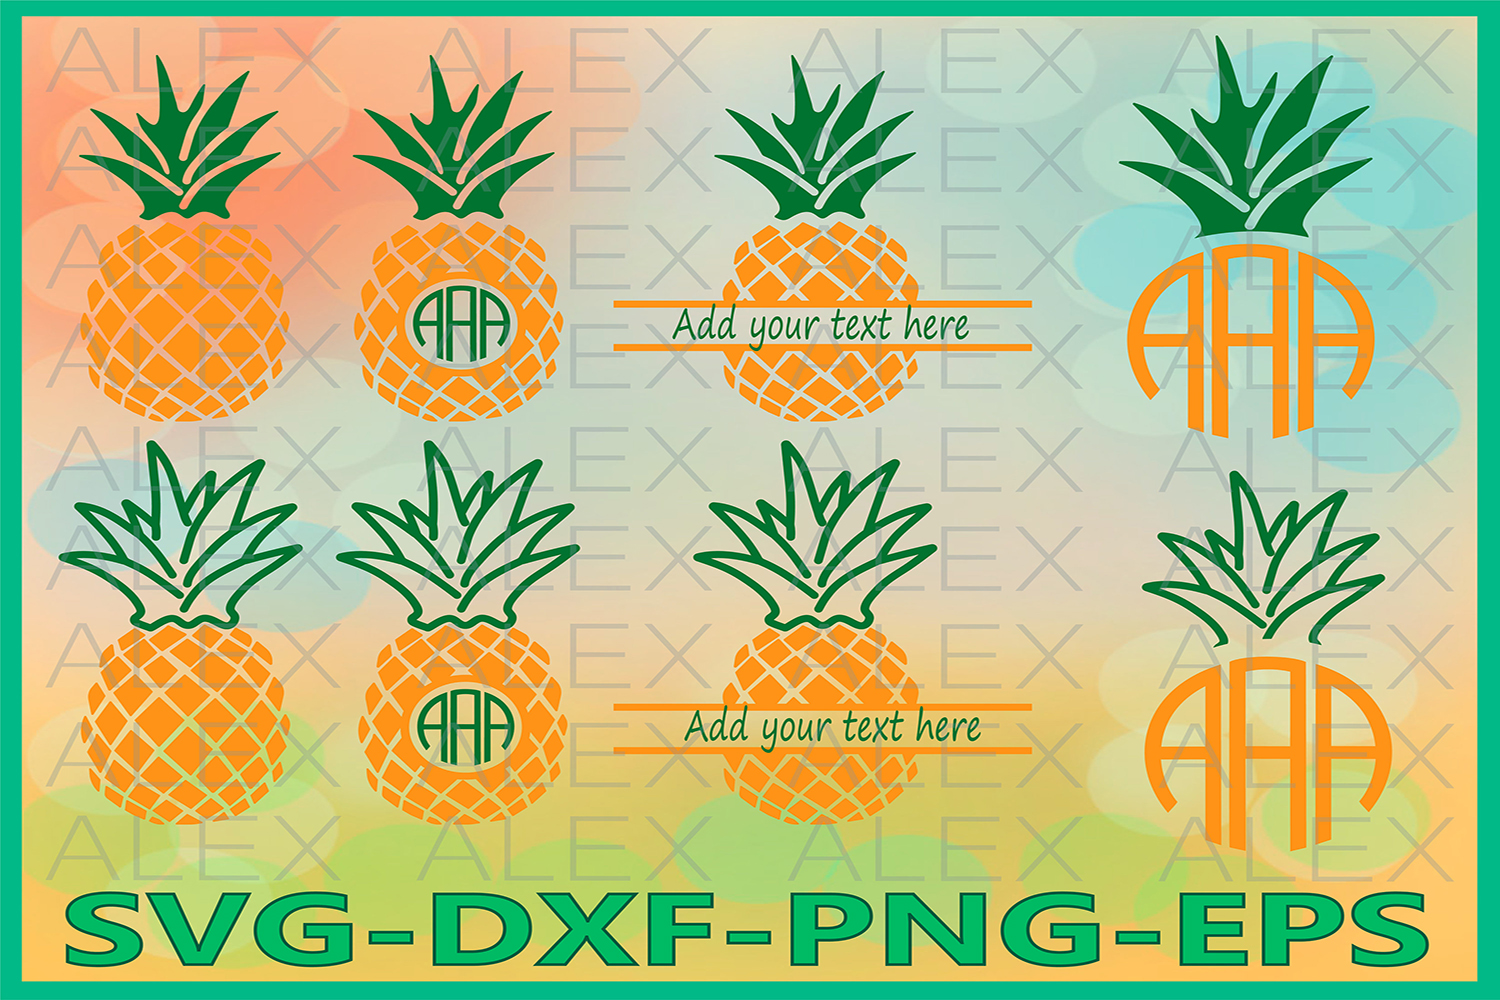 Pineapple SVG, Pineapple Monogram SVG, Pineapple Cricut example image 1